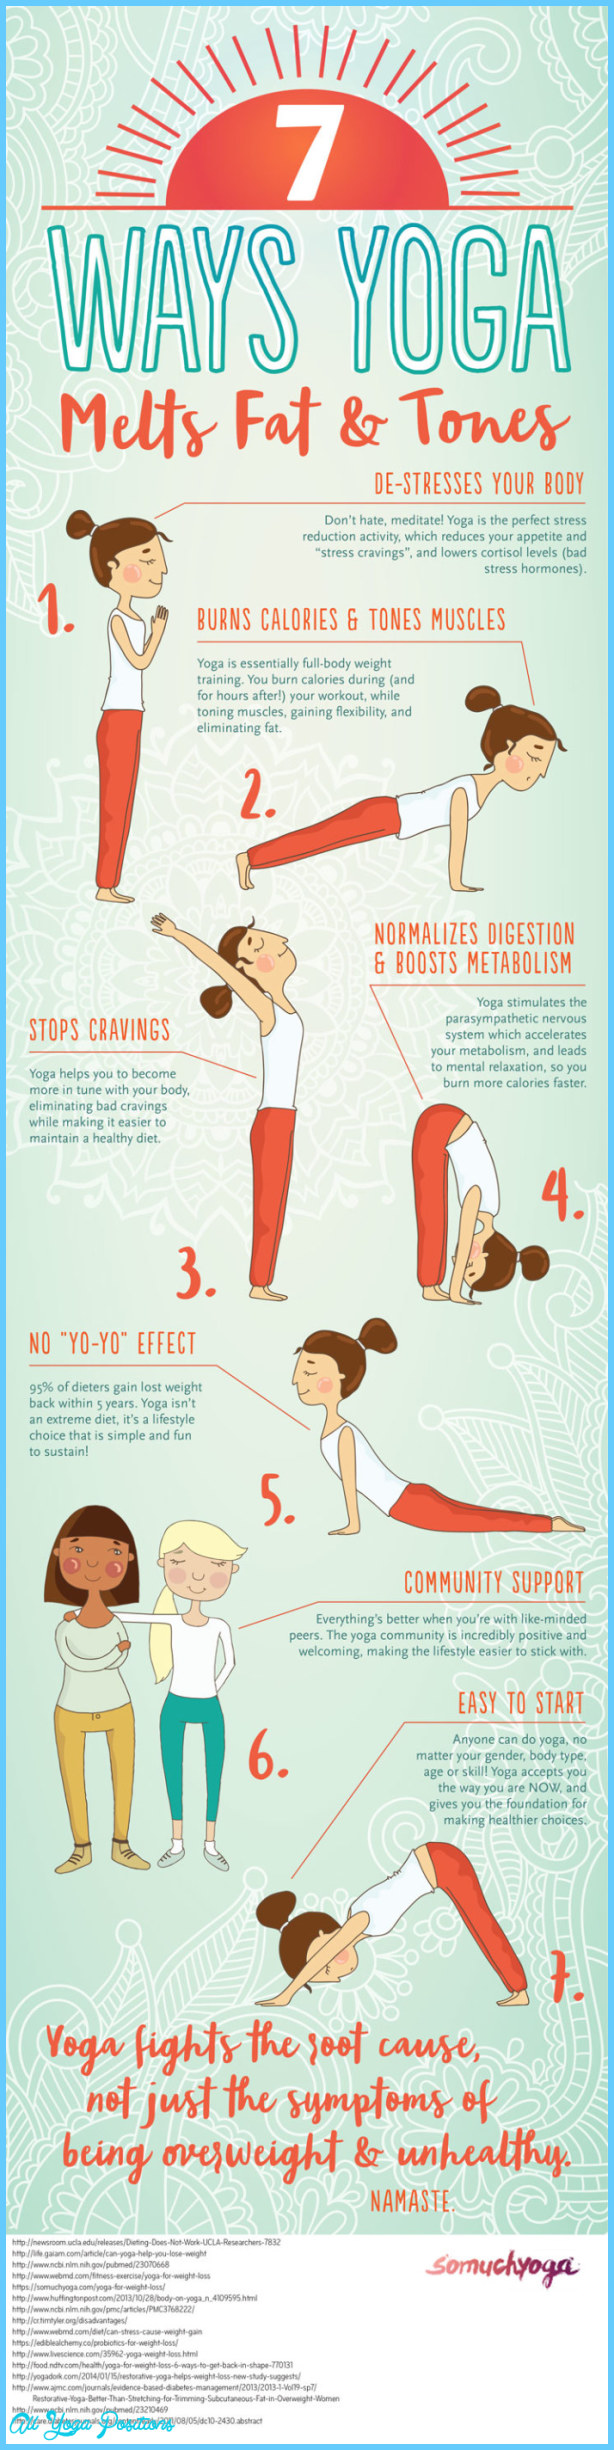 Yoga poses for weight loss stress reduction _27.jpg